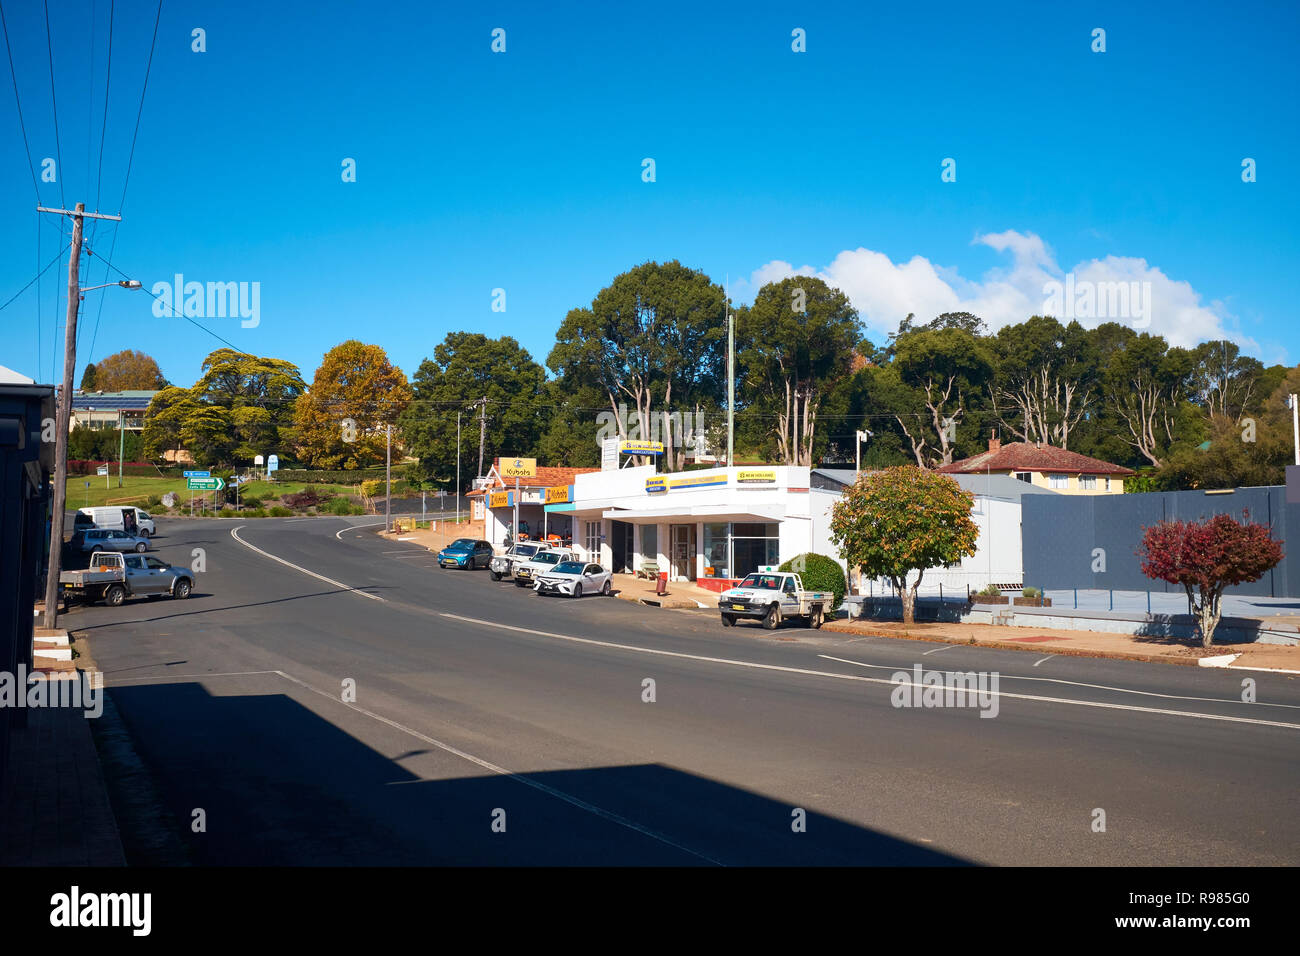 View of the road through Dorrigo with no traffic, vehicles parked in front of buildings and gum trees in the background on an autumn day - Stock Image